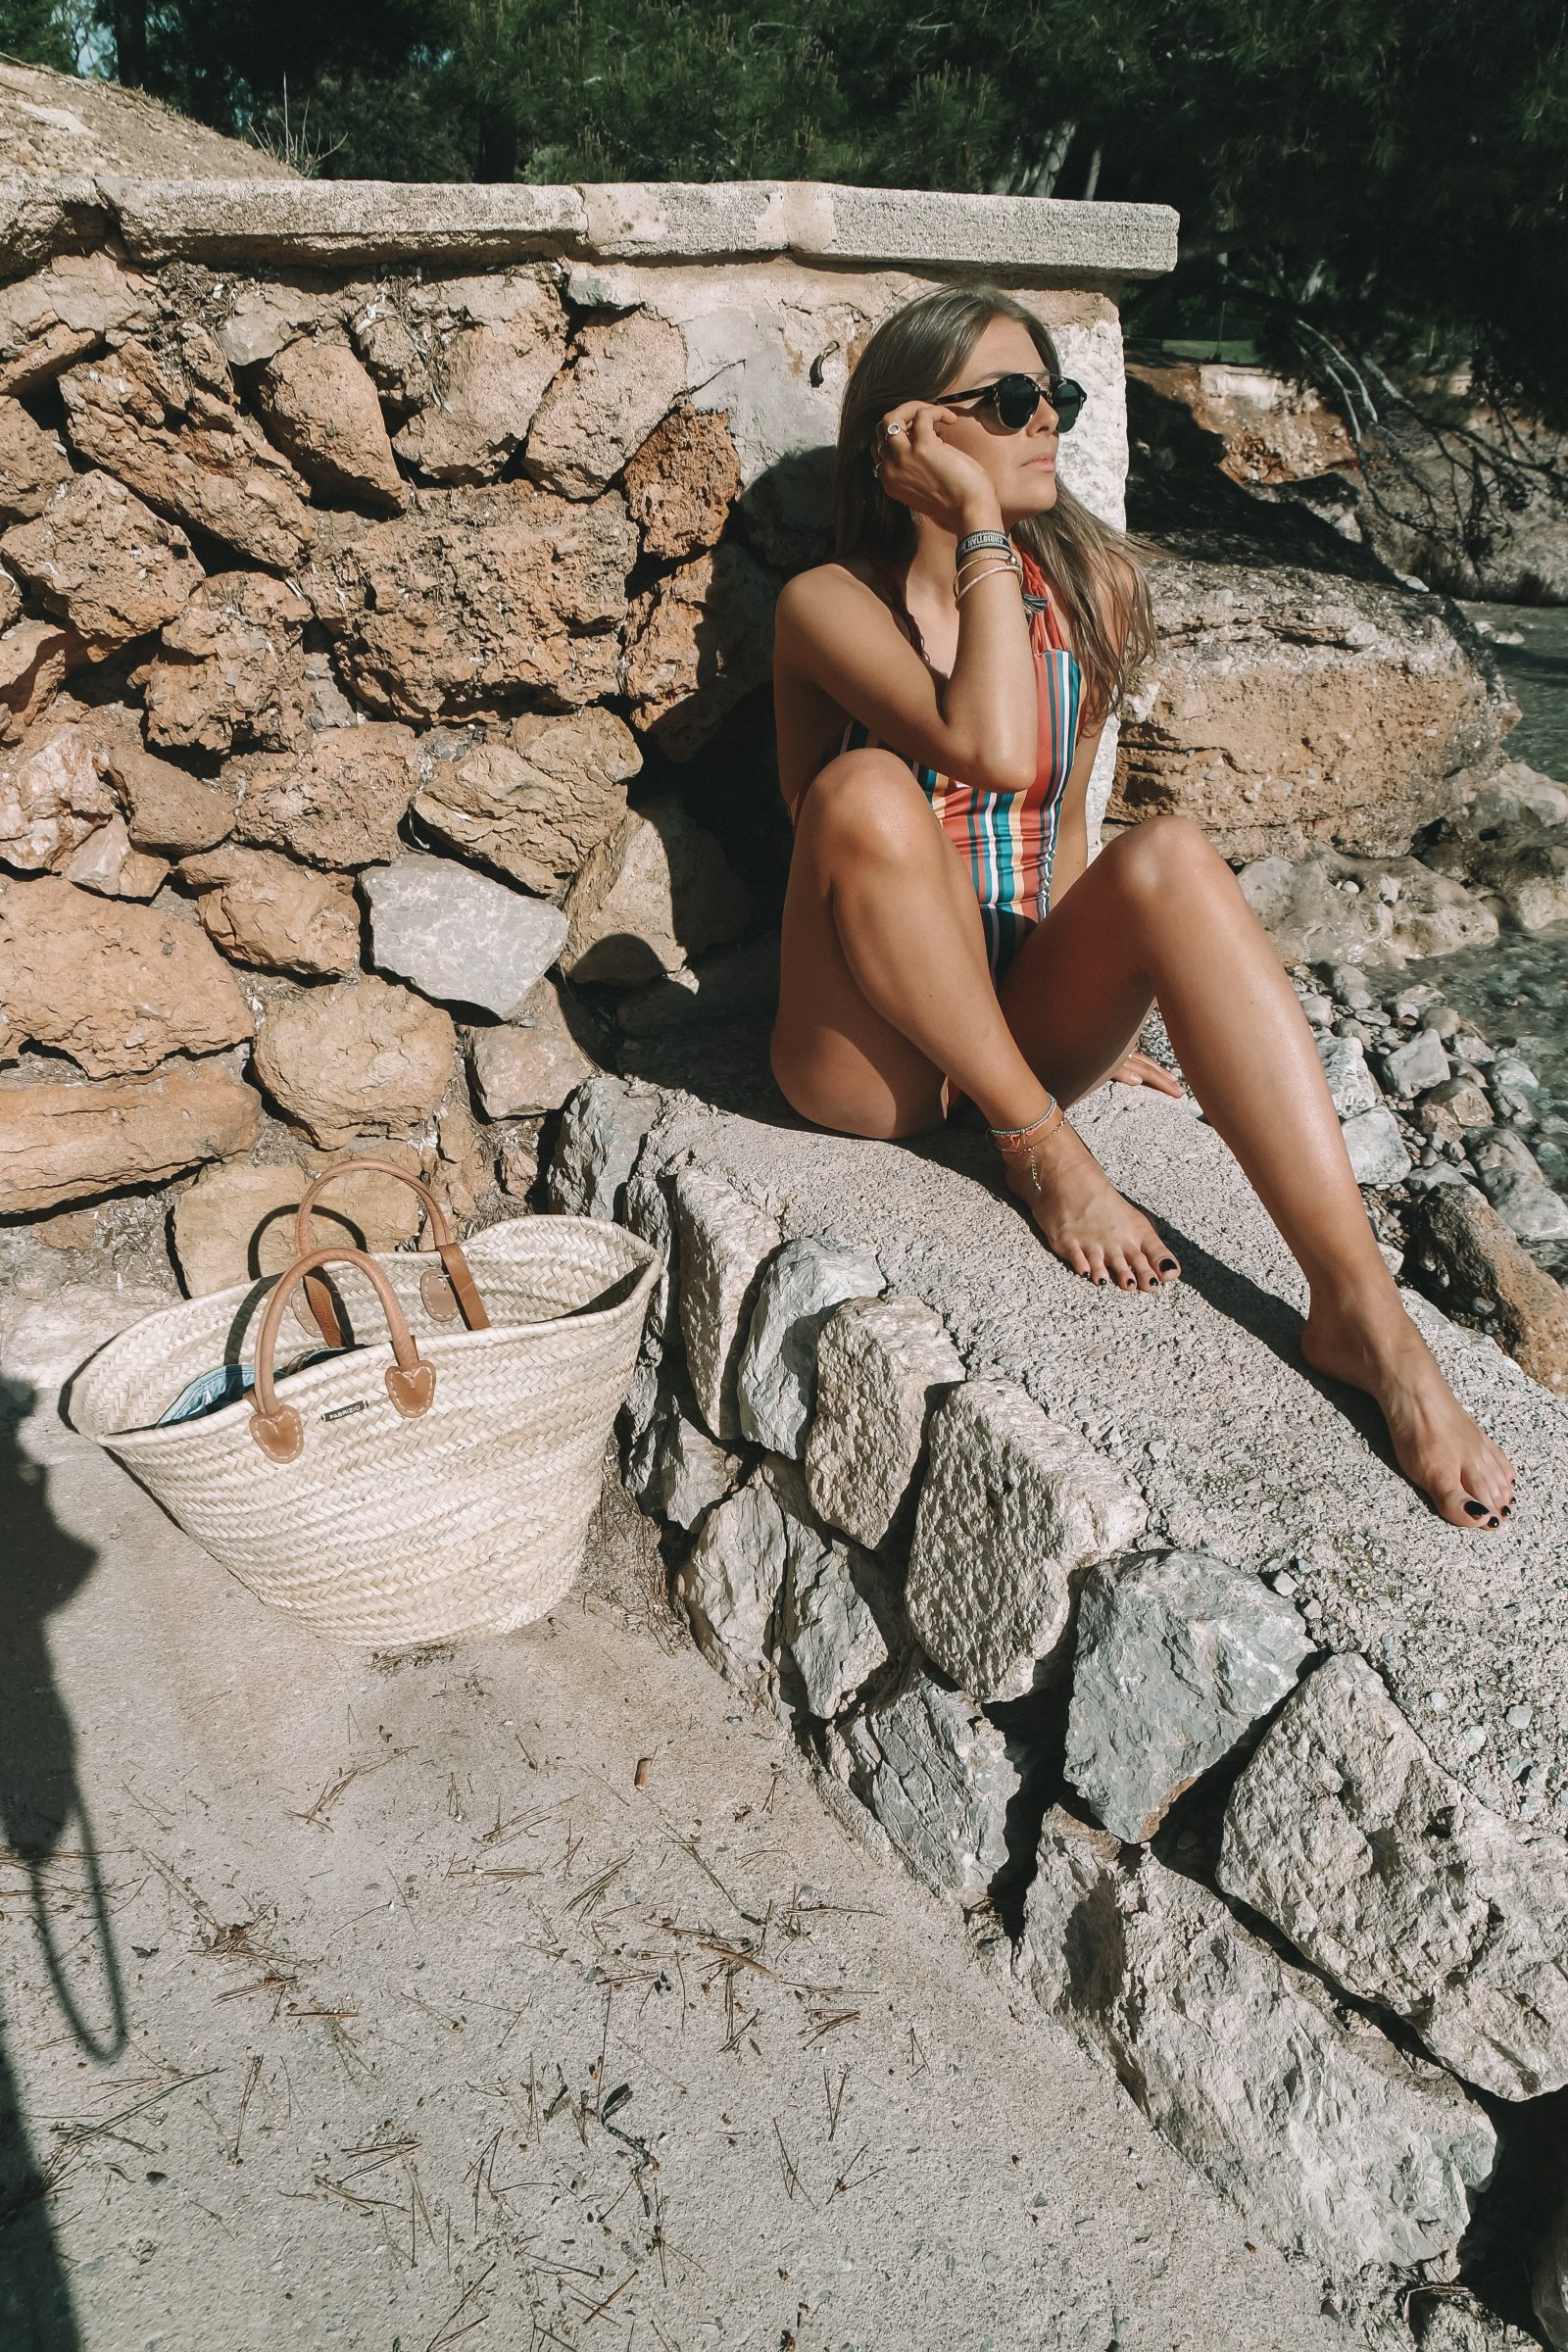 Striped Swimsuit - Swimwear 365 One Piece & Natural Basket Bag in Mallorca - Royal Hideaway Hotel Formentor